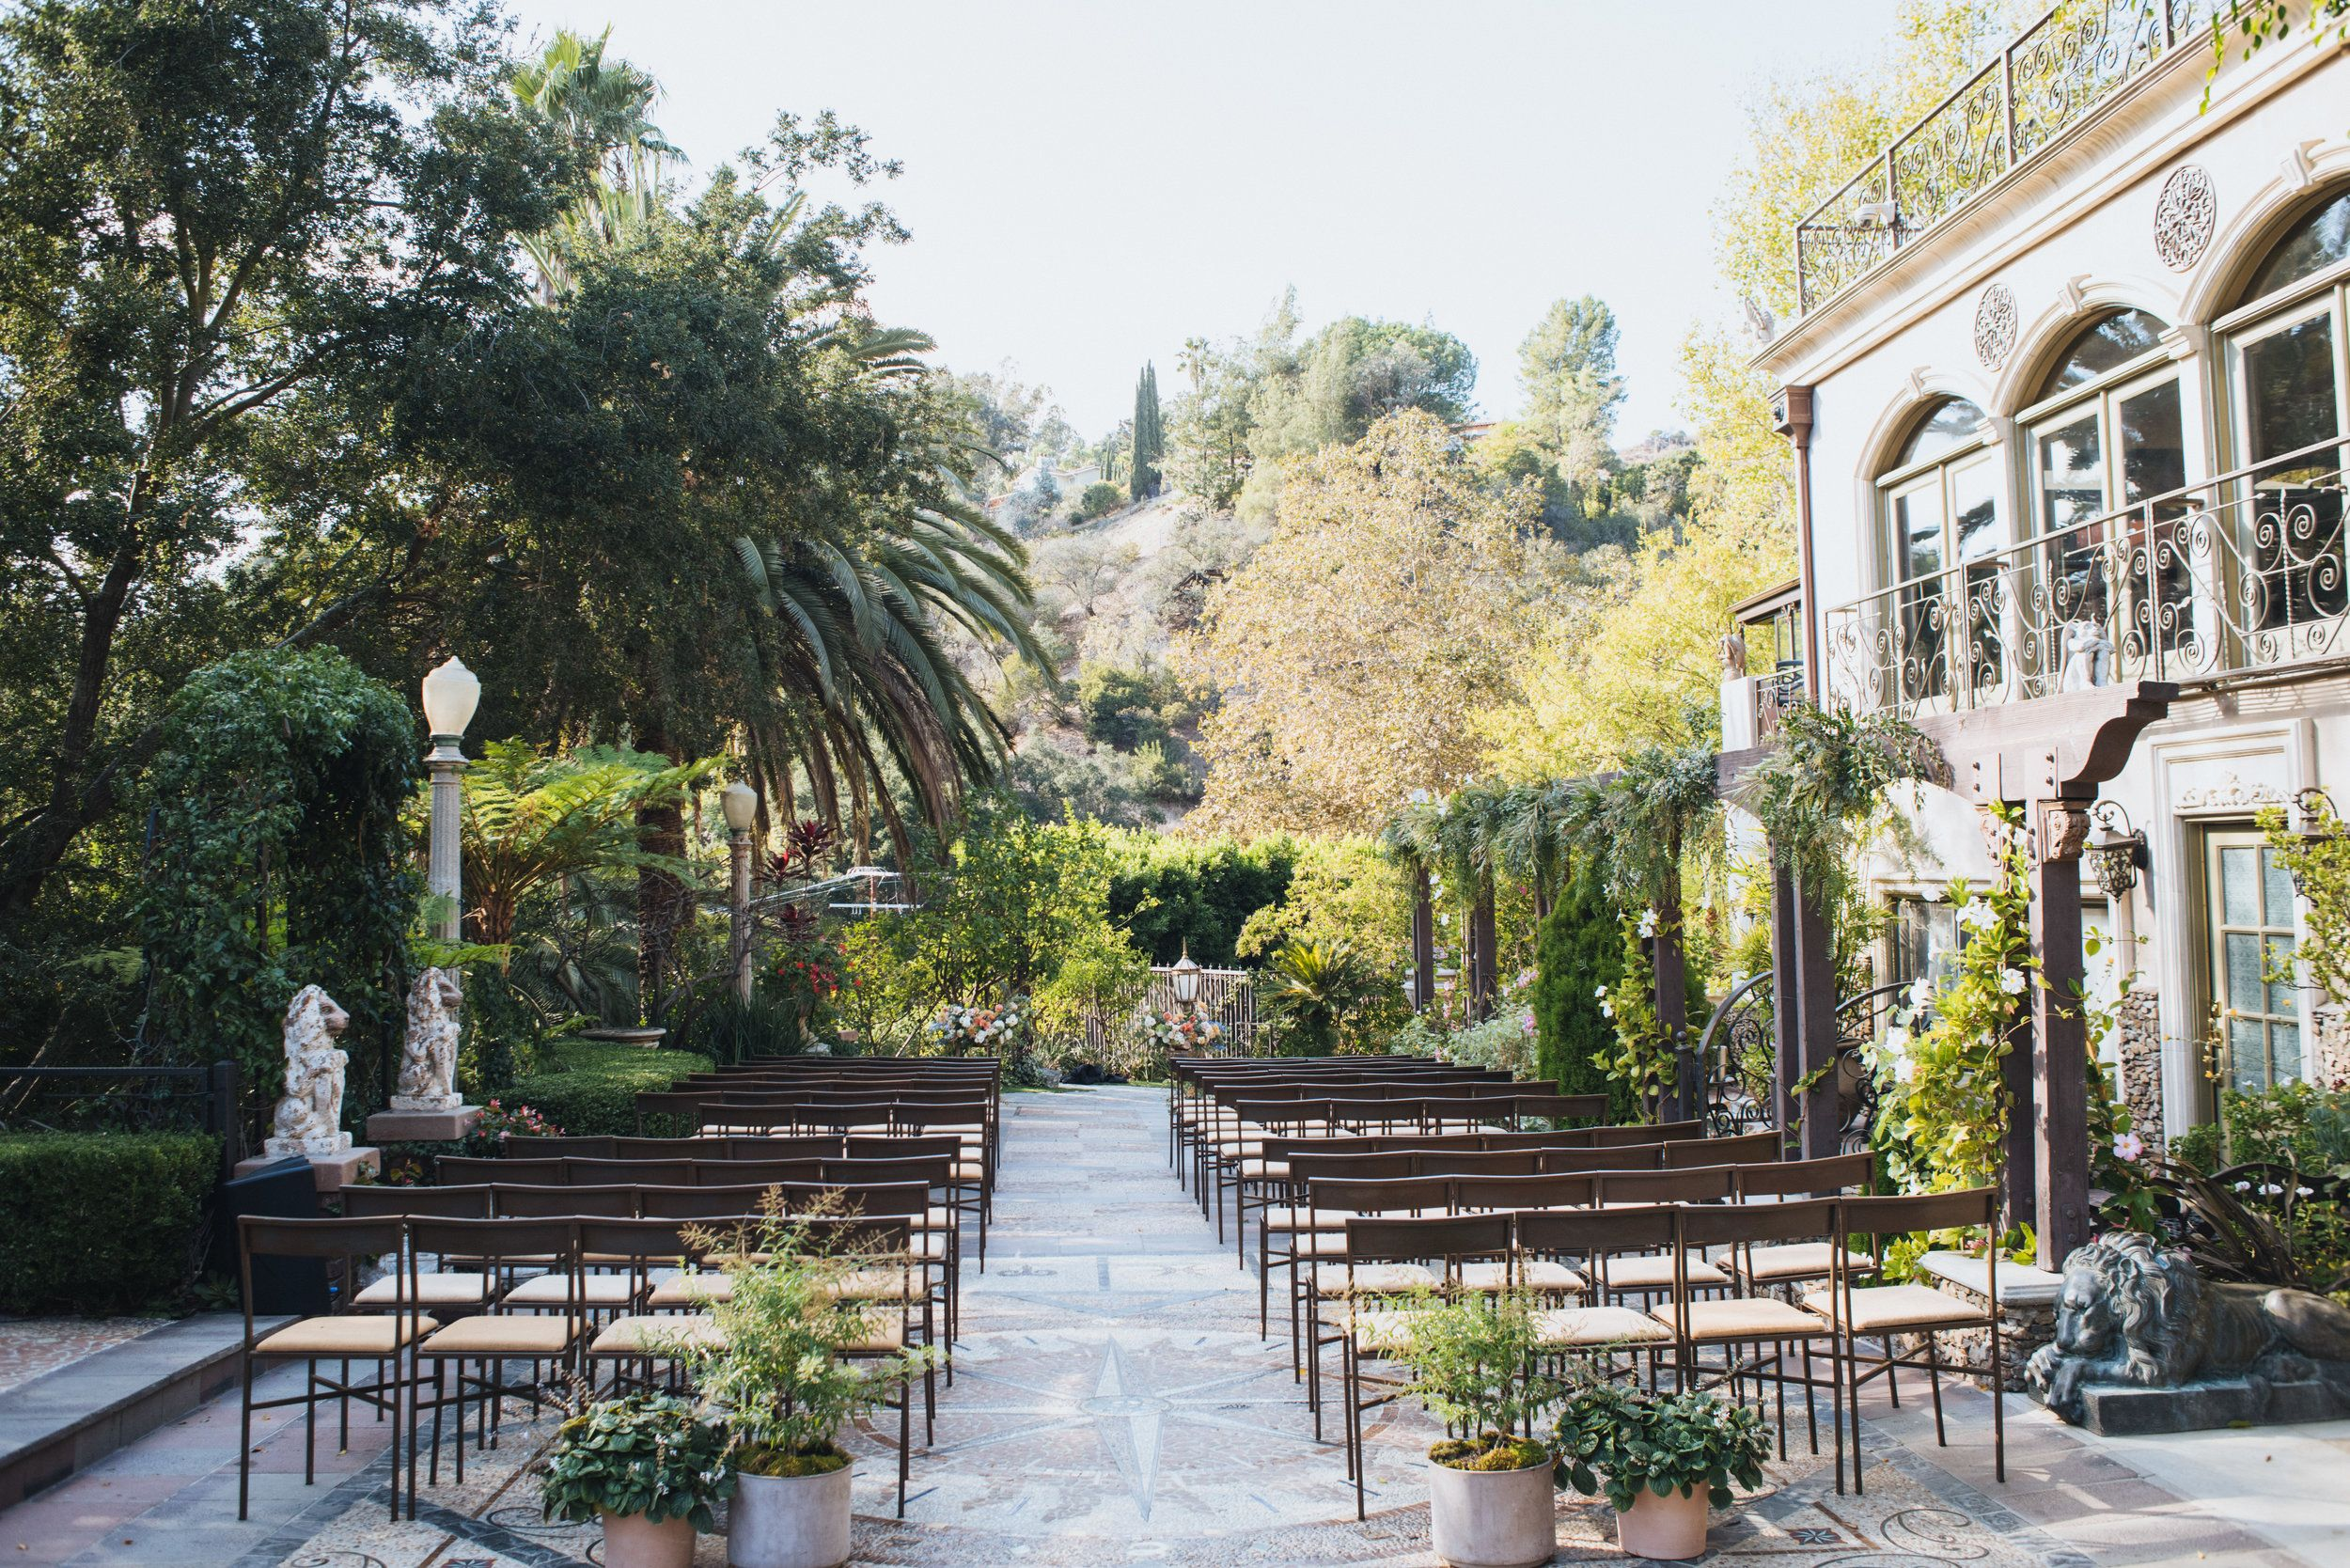 Wedding Ceremony At The Houdini Estate Houdini Mansion Wedding Art Soul Events R Wedding Los Angeles Wedding Venue Los Angeles Outdoor Wedding Inspiration